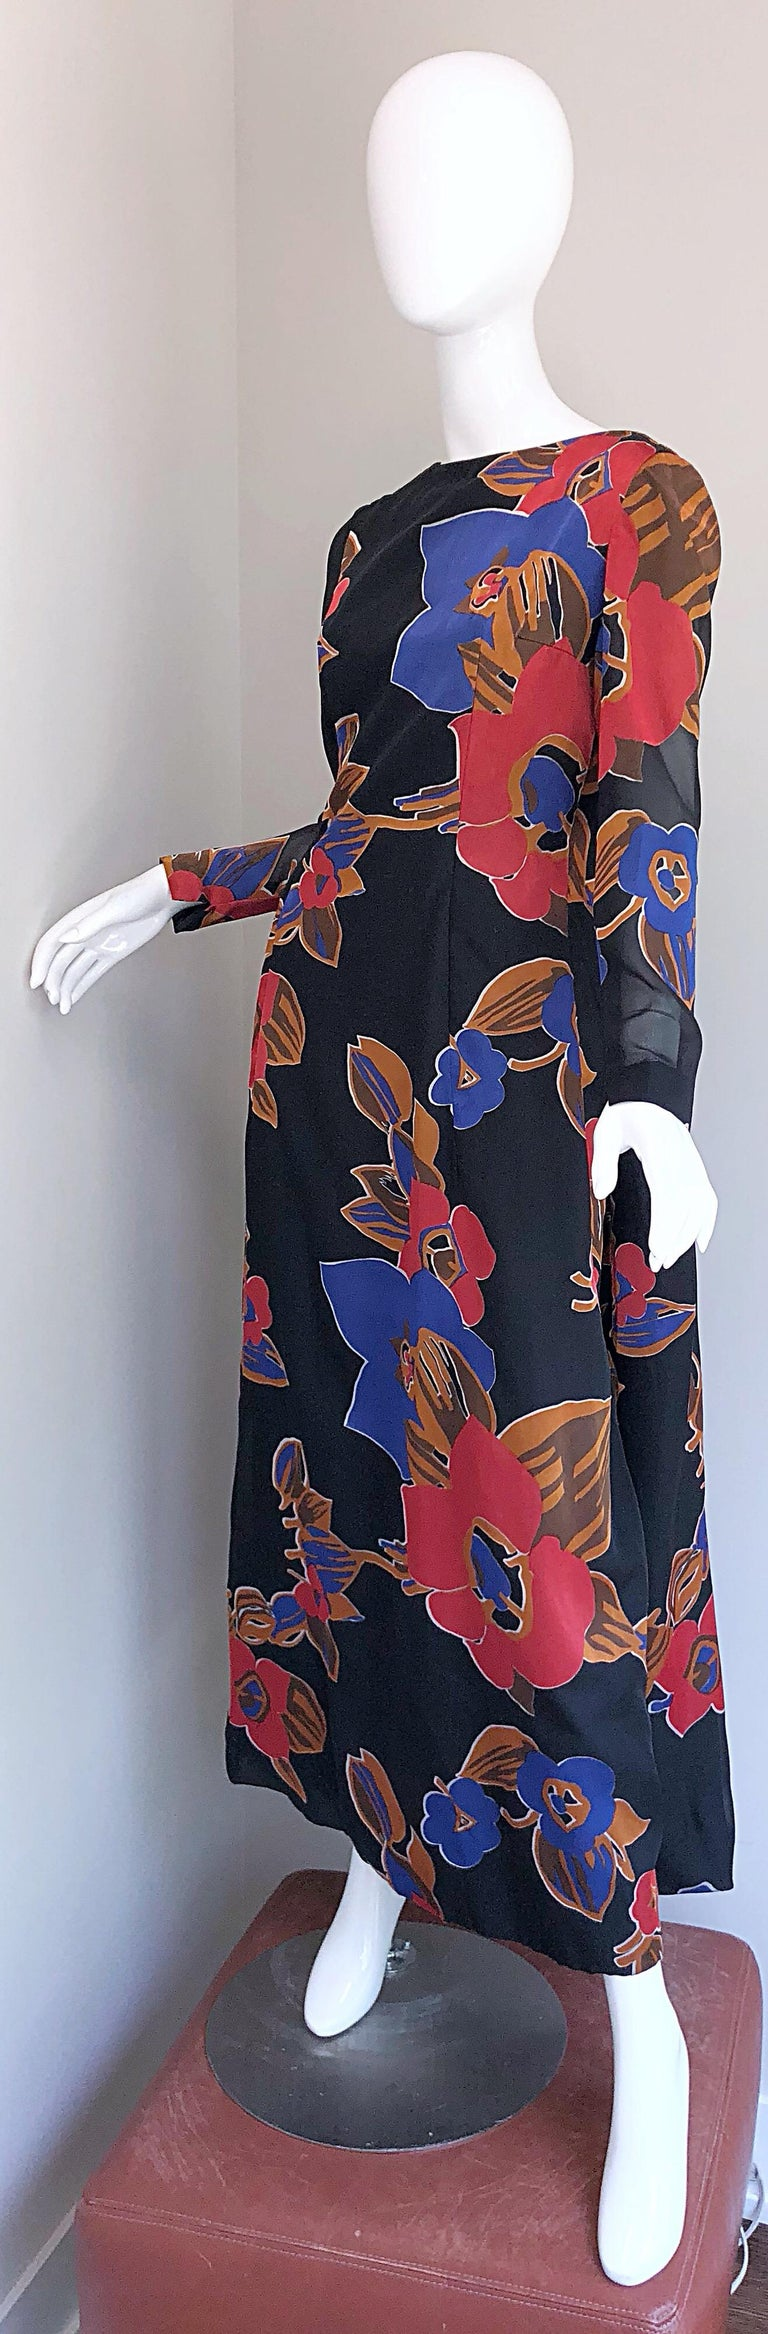 1960s John Boyle Bishop Black + Brown + Red Abstract Trained 60s Gown Maxi Dress For Sale 4